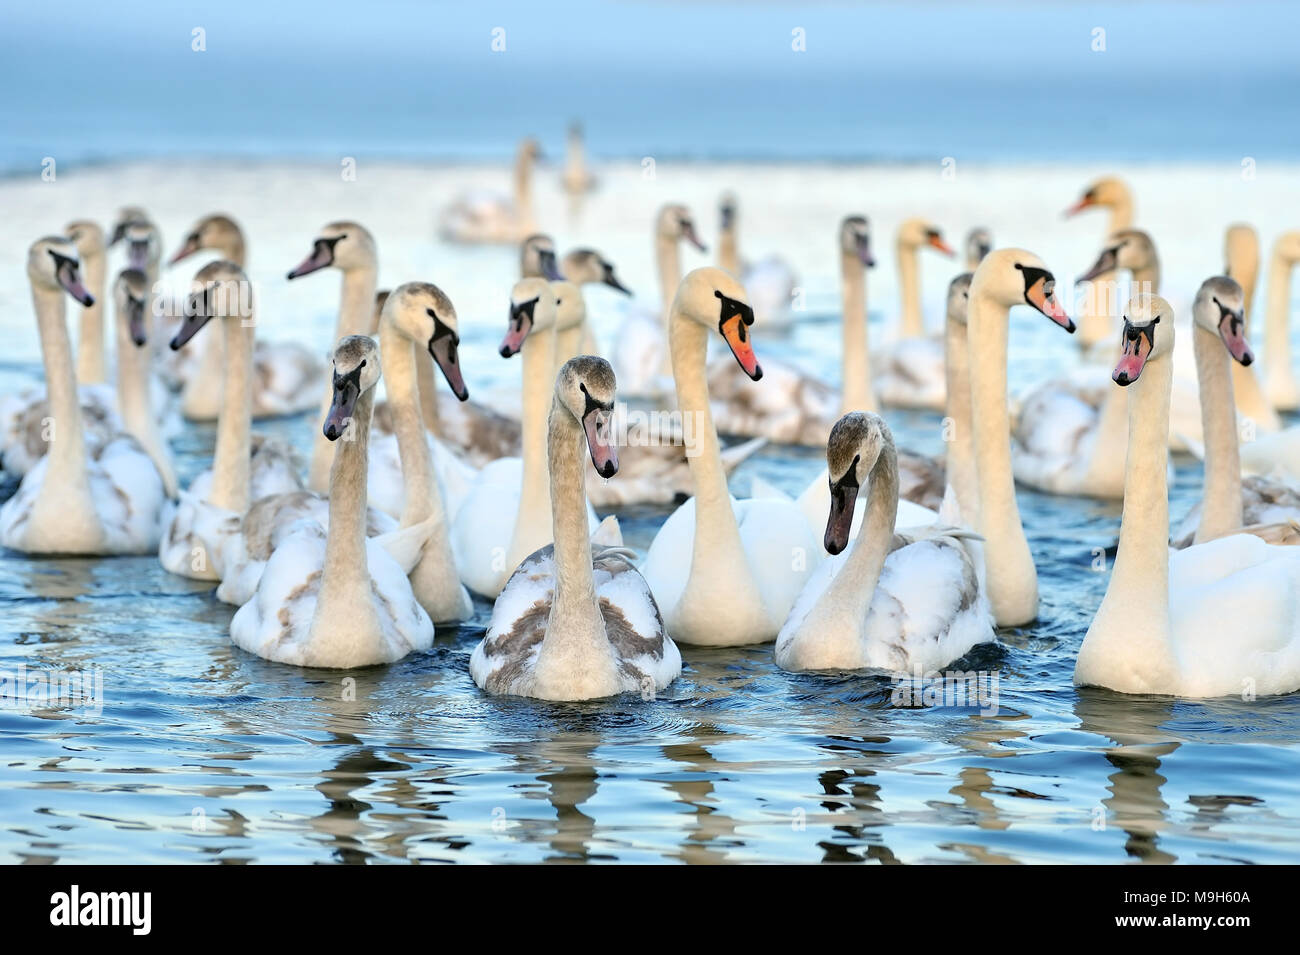 Group of white swans swimming in blue water. Cygnus olor - Stock Image